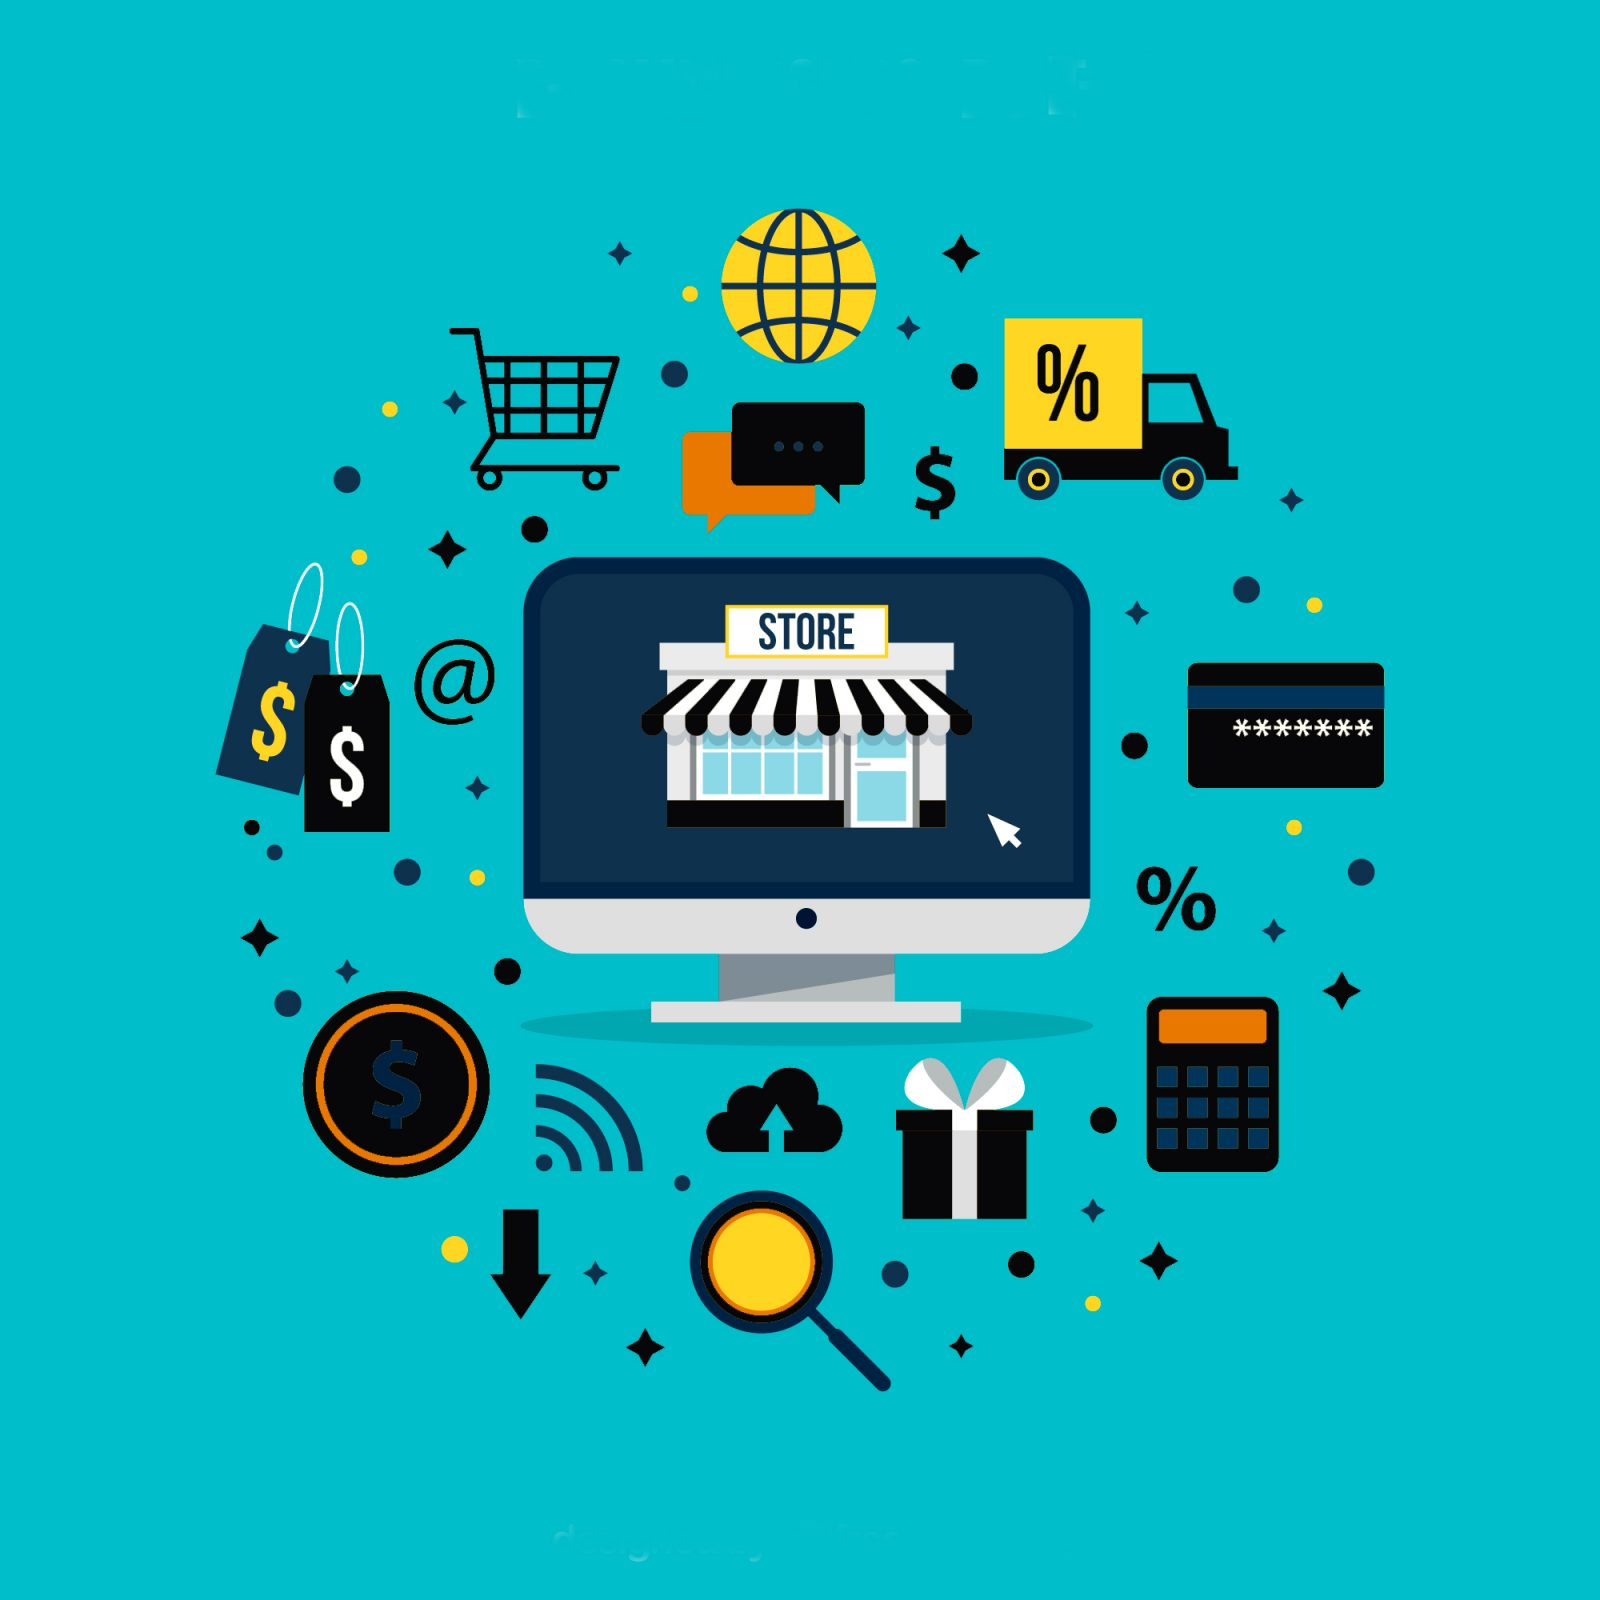 Importance of web design and SEO for online business in 2019